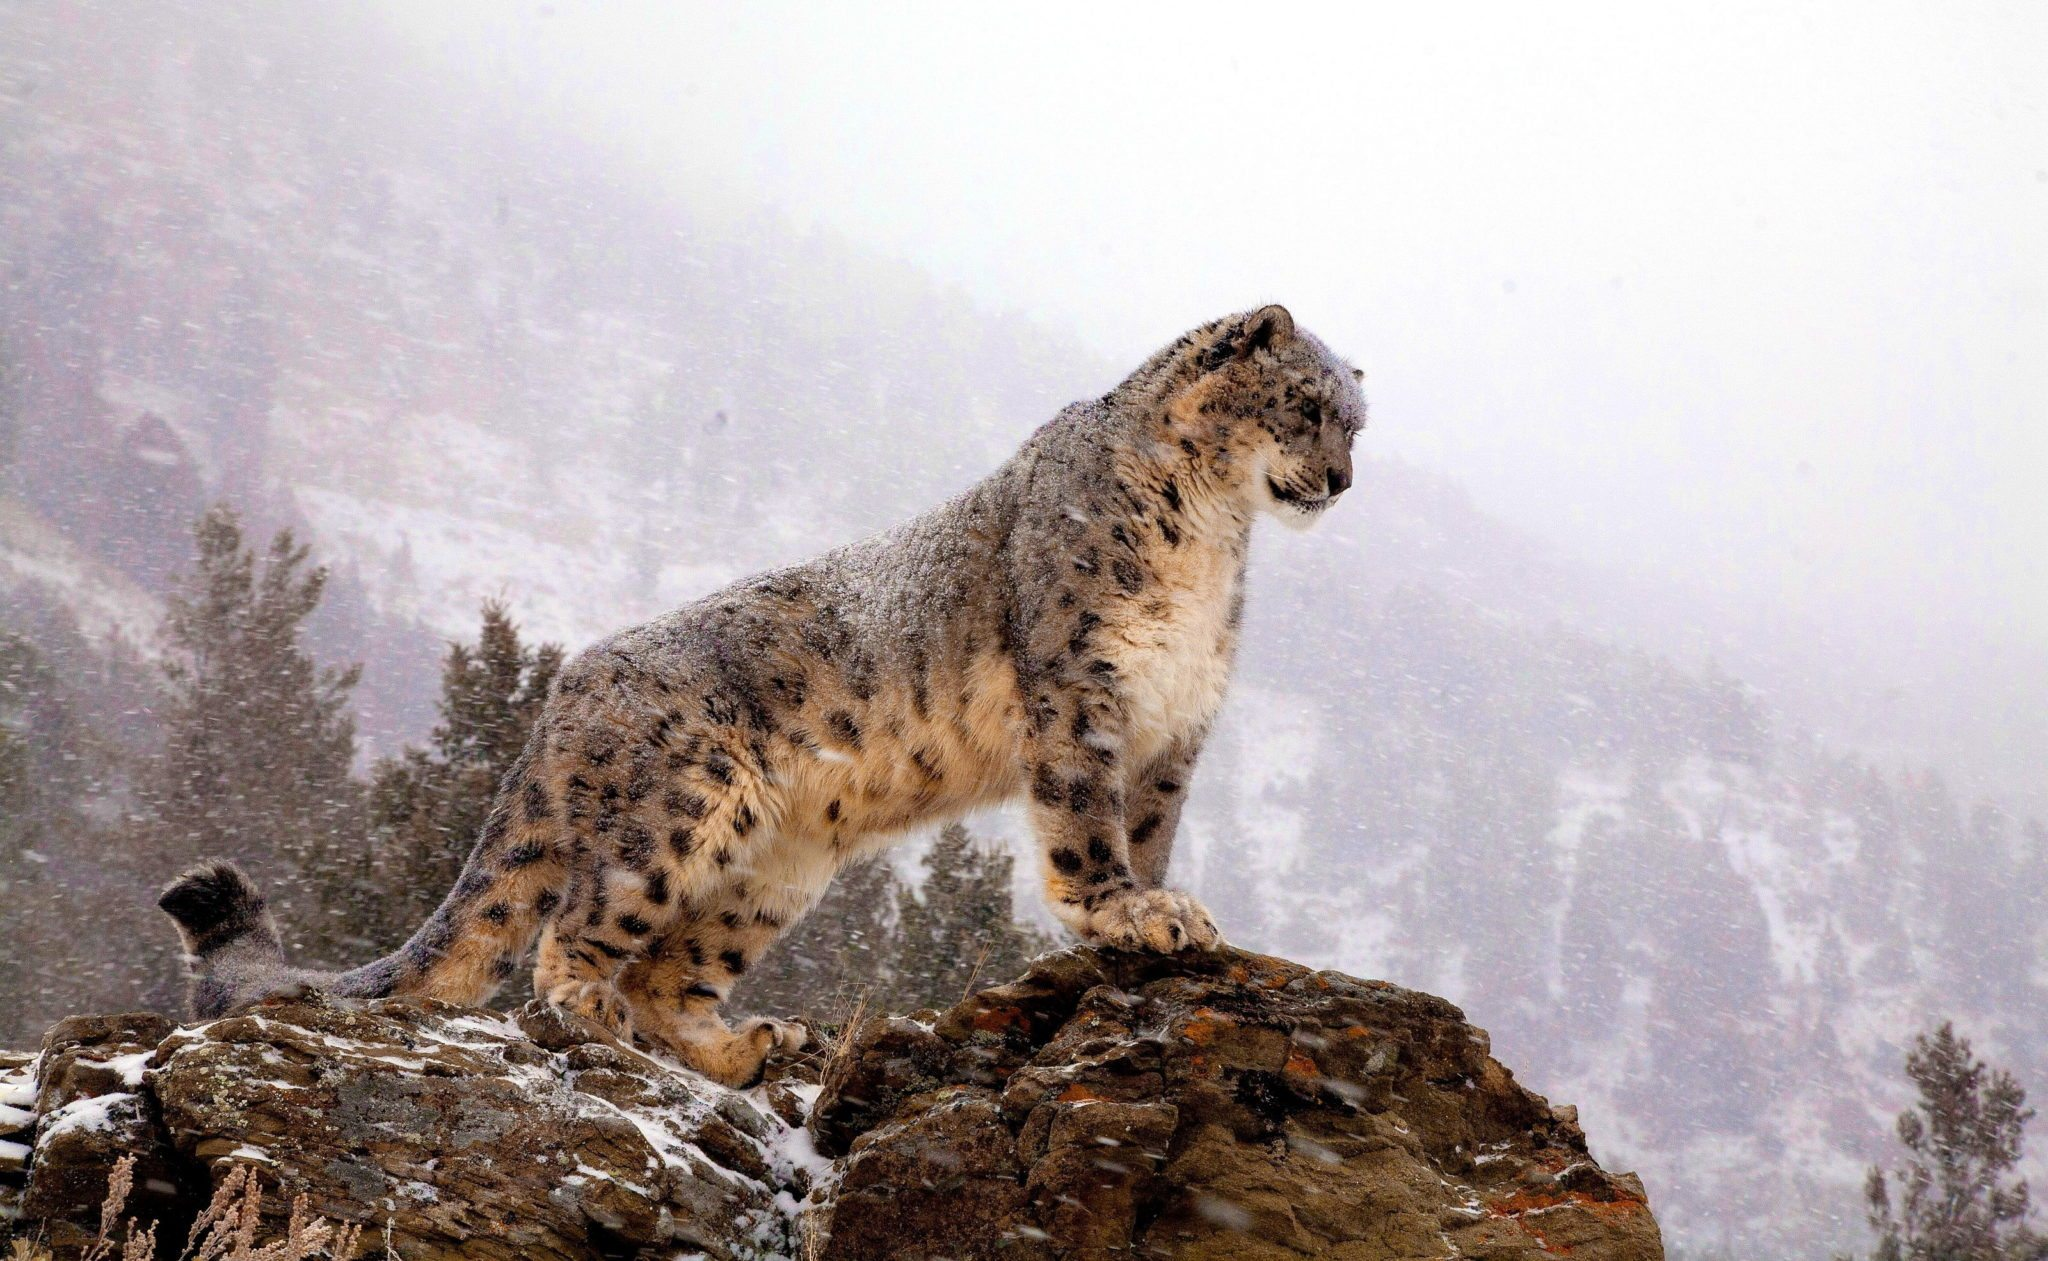 Hardy climbers: snow leopards can range to altitudes of 5,000m - higher than any mountain in Western Europe - though between 3,000 to 4,500m is more usual